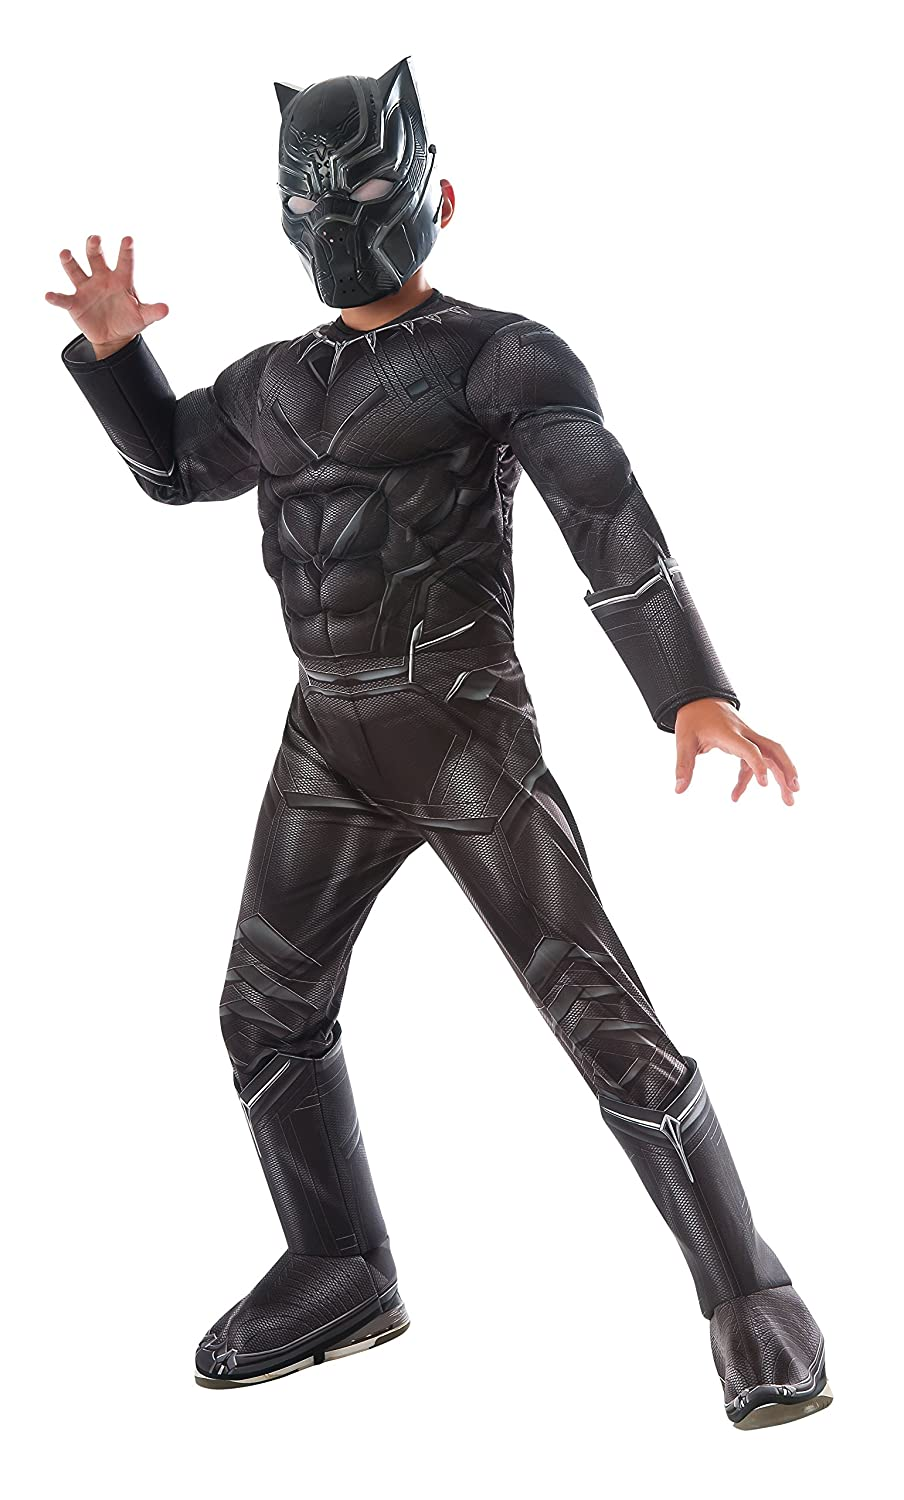 Captain America: Civil War Black Panther Costume